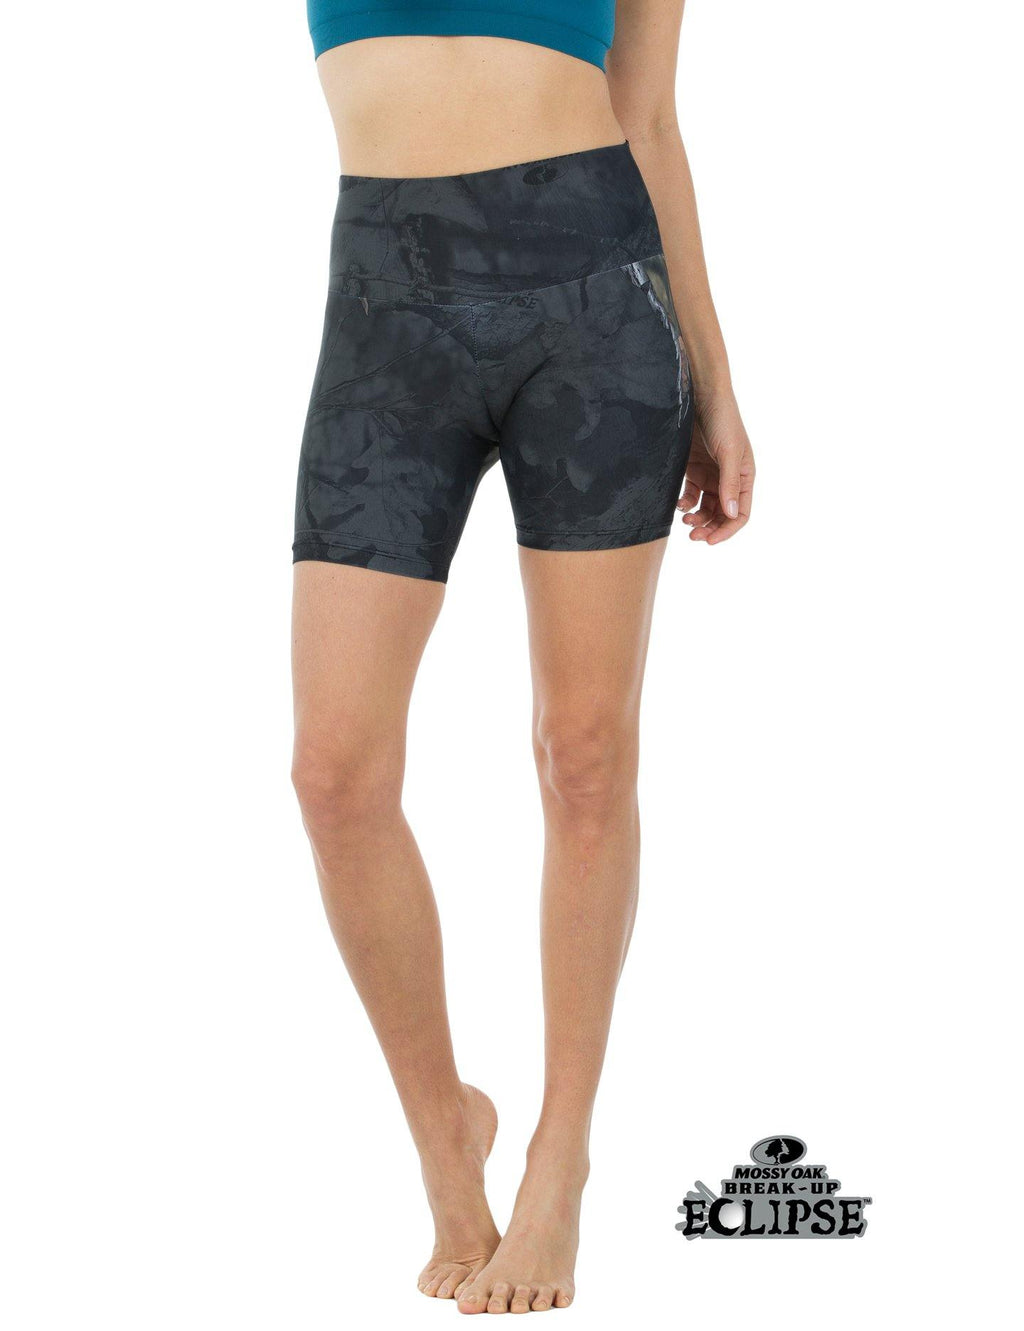 Apsara Shorts High Waist, Mossy Oak Break-Up Eclipse